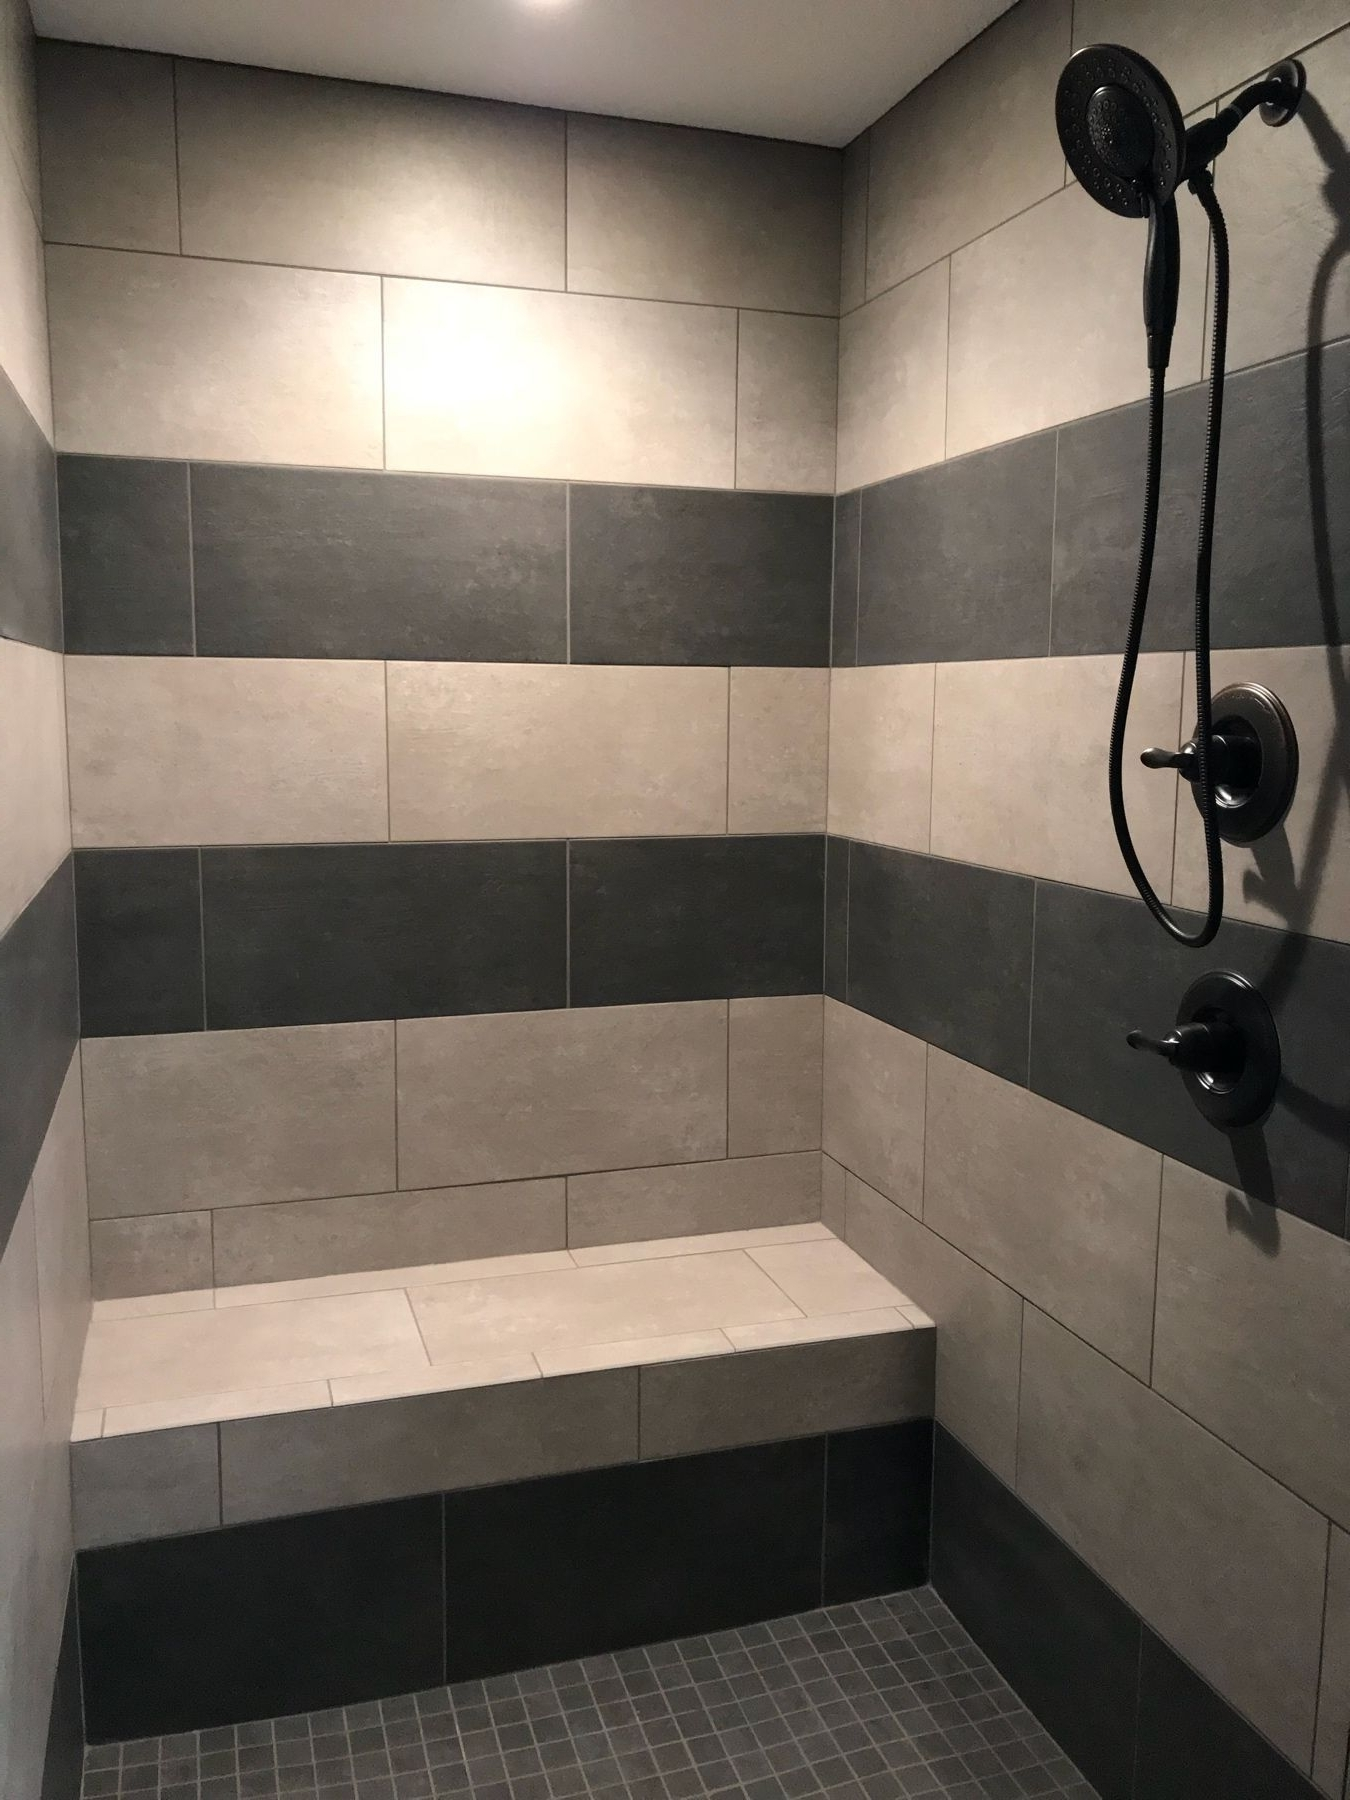 Striped Walk In Tile Shower With Light And Dark Ceramic Tile 40+ 2X2 Bathroom Design Ideas